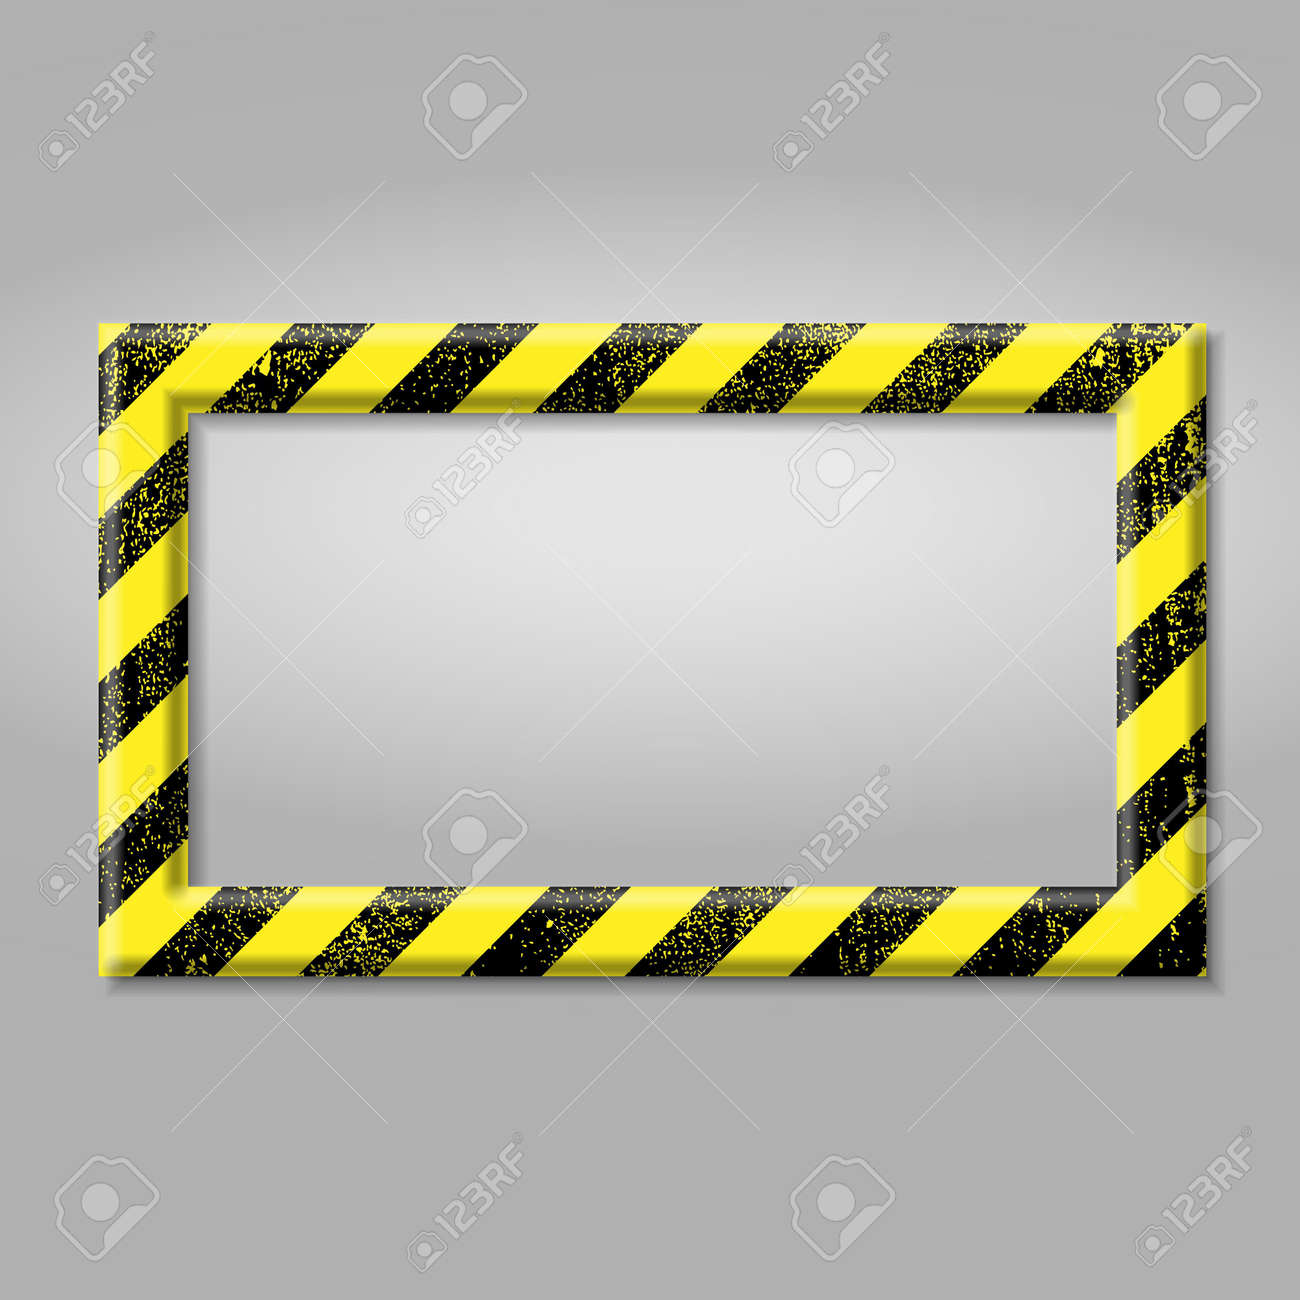 Frame with line yellow and black color. Caution sign. The hazard warning for text Template for your design - 168622458